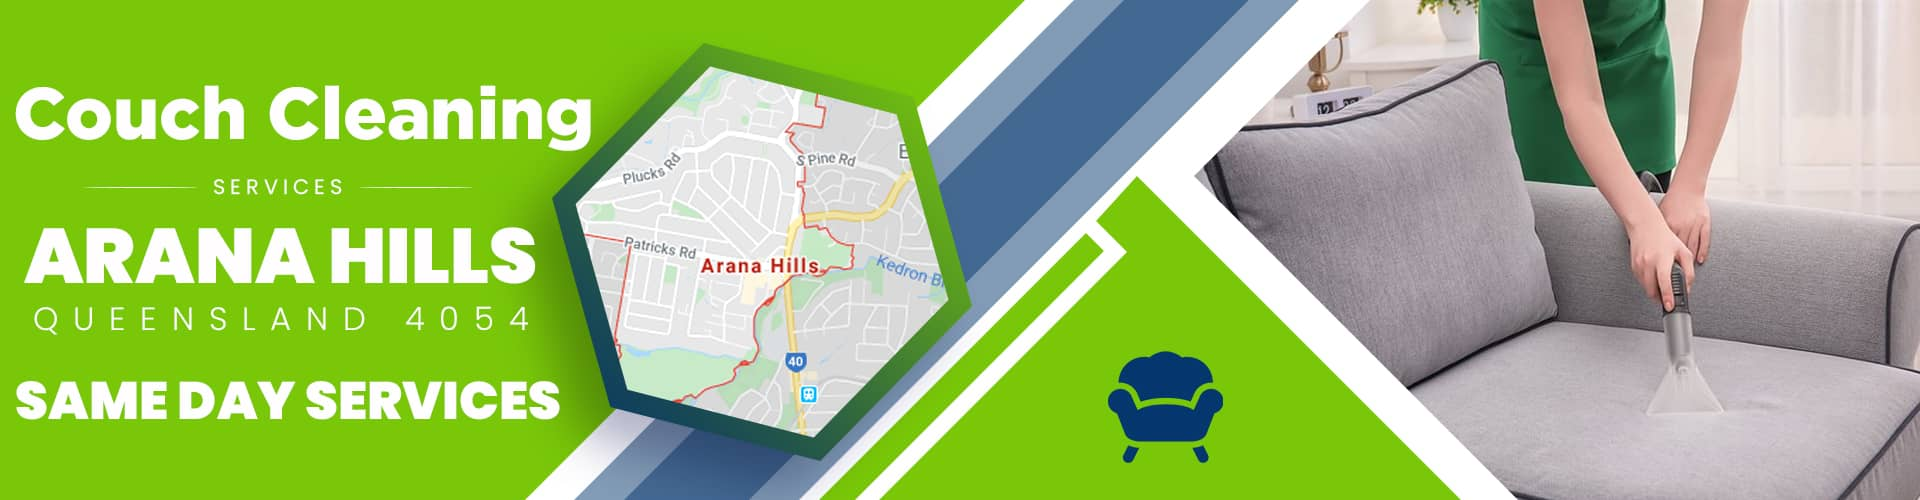 Couch Cleaning Arana Hills